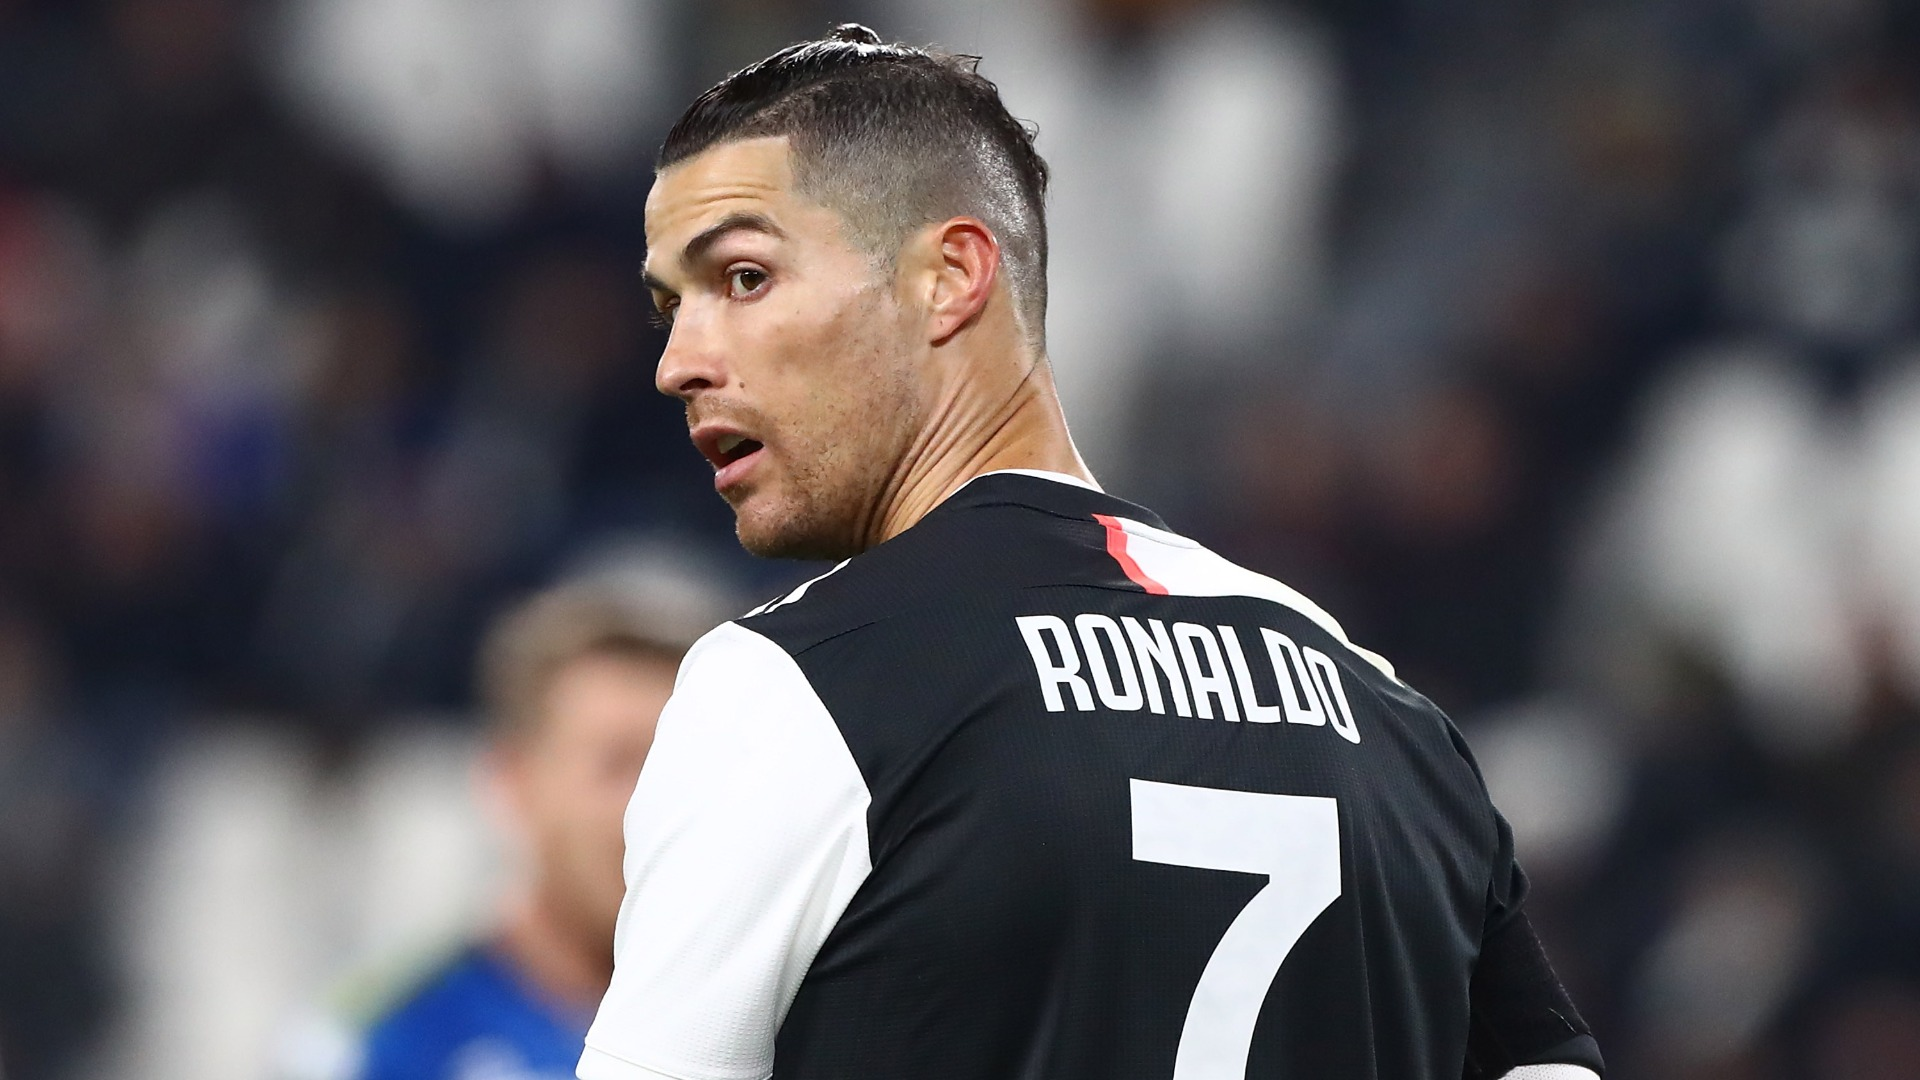 Ronaldo solves 100 problems for Juventus - Sarri